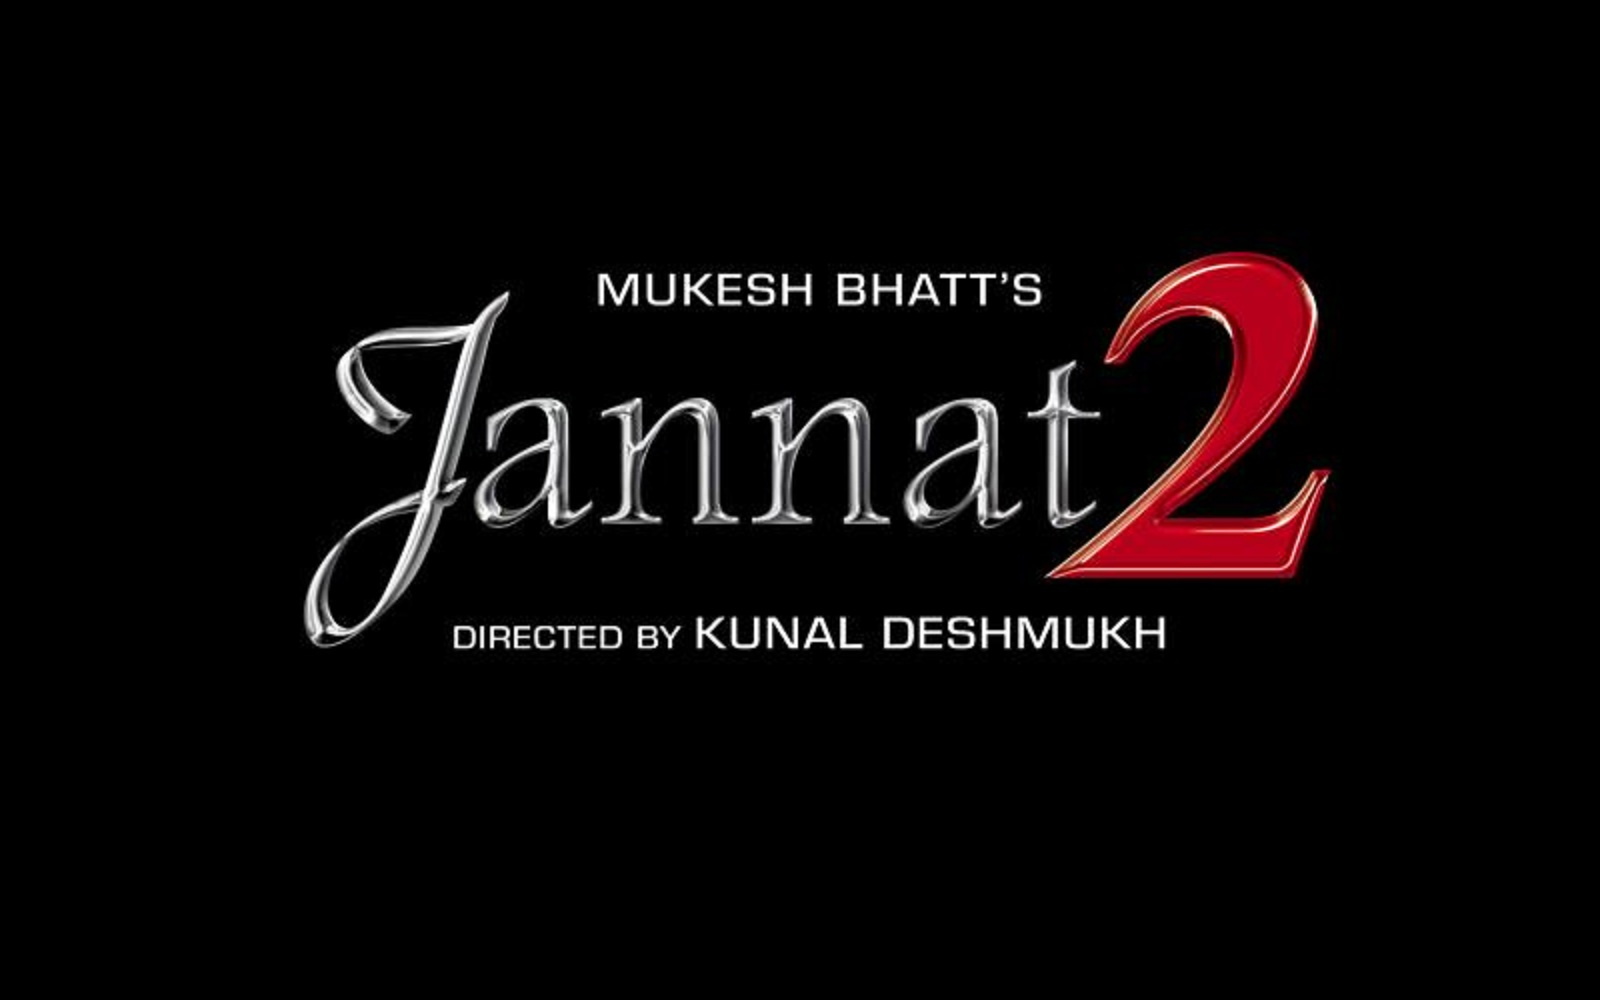 Hindi movie jannat 2 all songs lyrics house of hindi and for House house house house music song